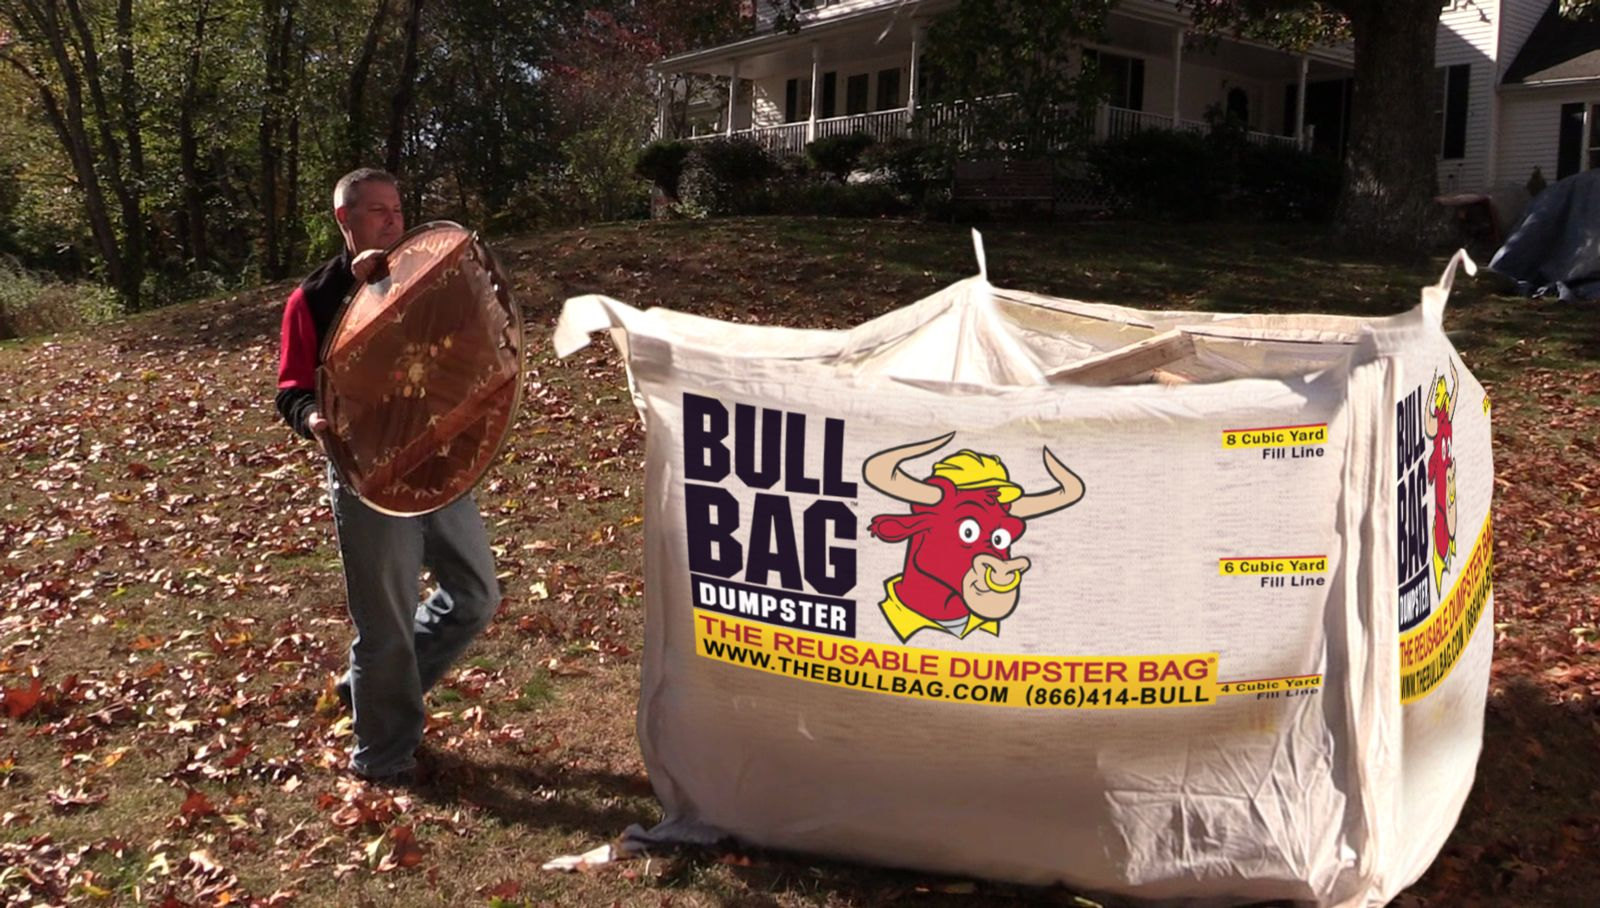 South Florida Dumpster Service Houston Tx Connecticut Ma Bullbag